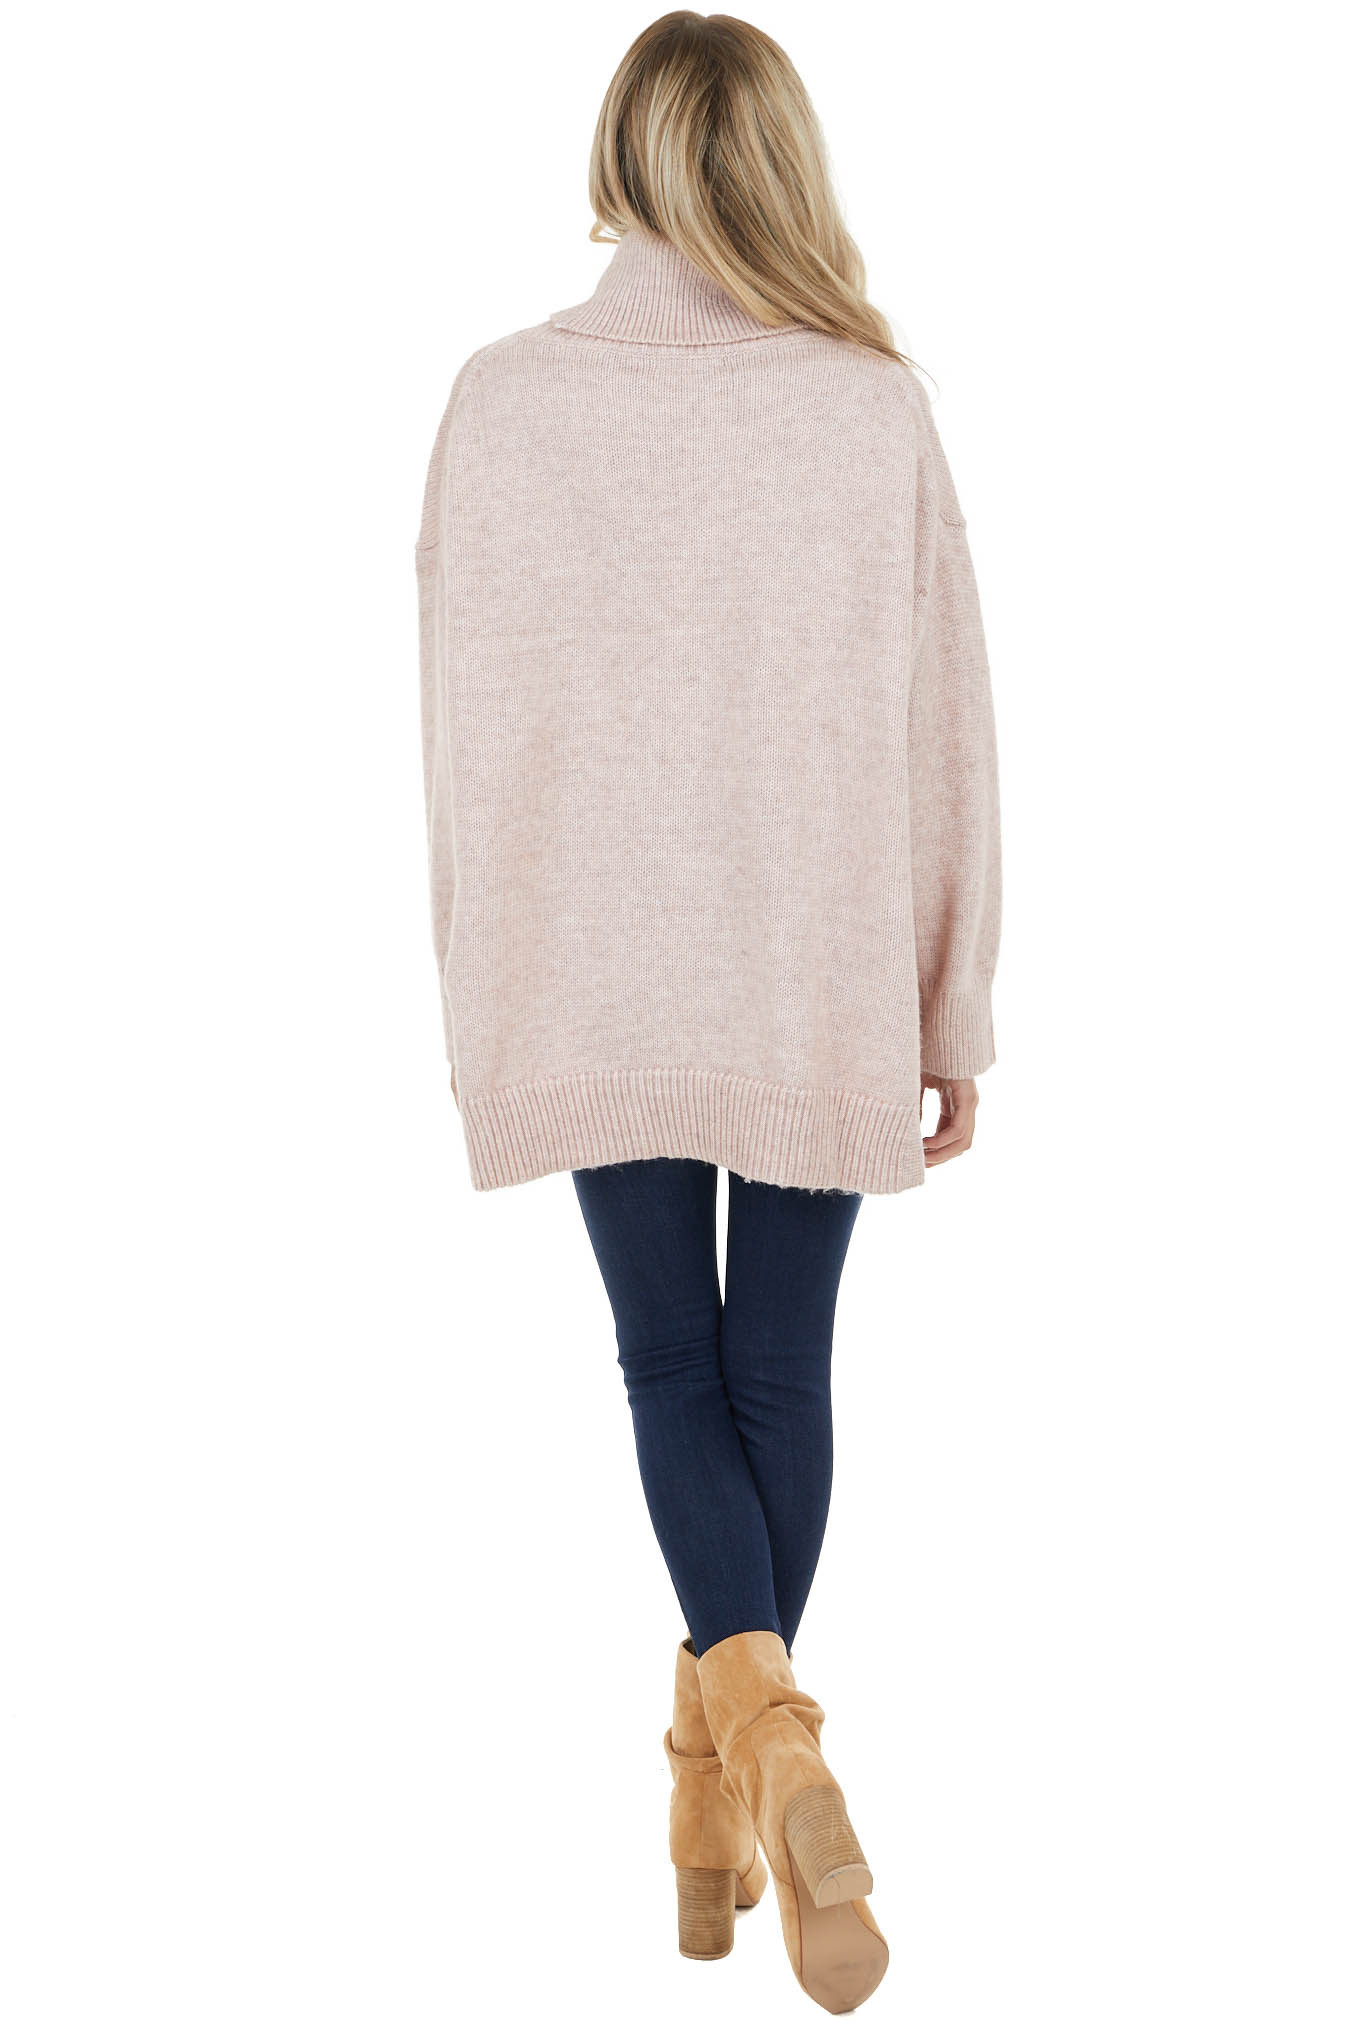 Dusty Rose Turtleneck Sweater with Long Dolman Sleeves